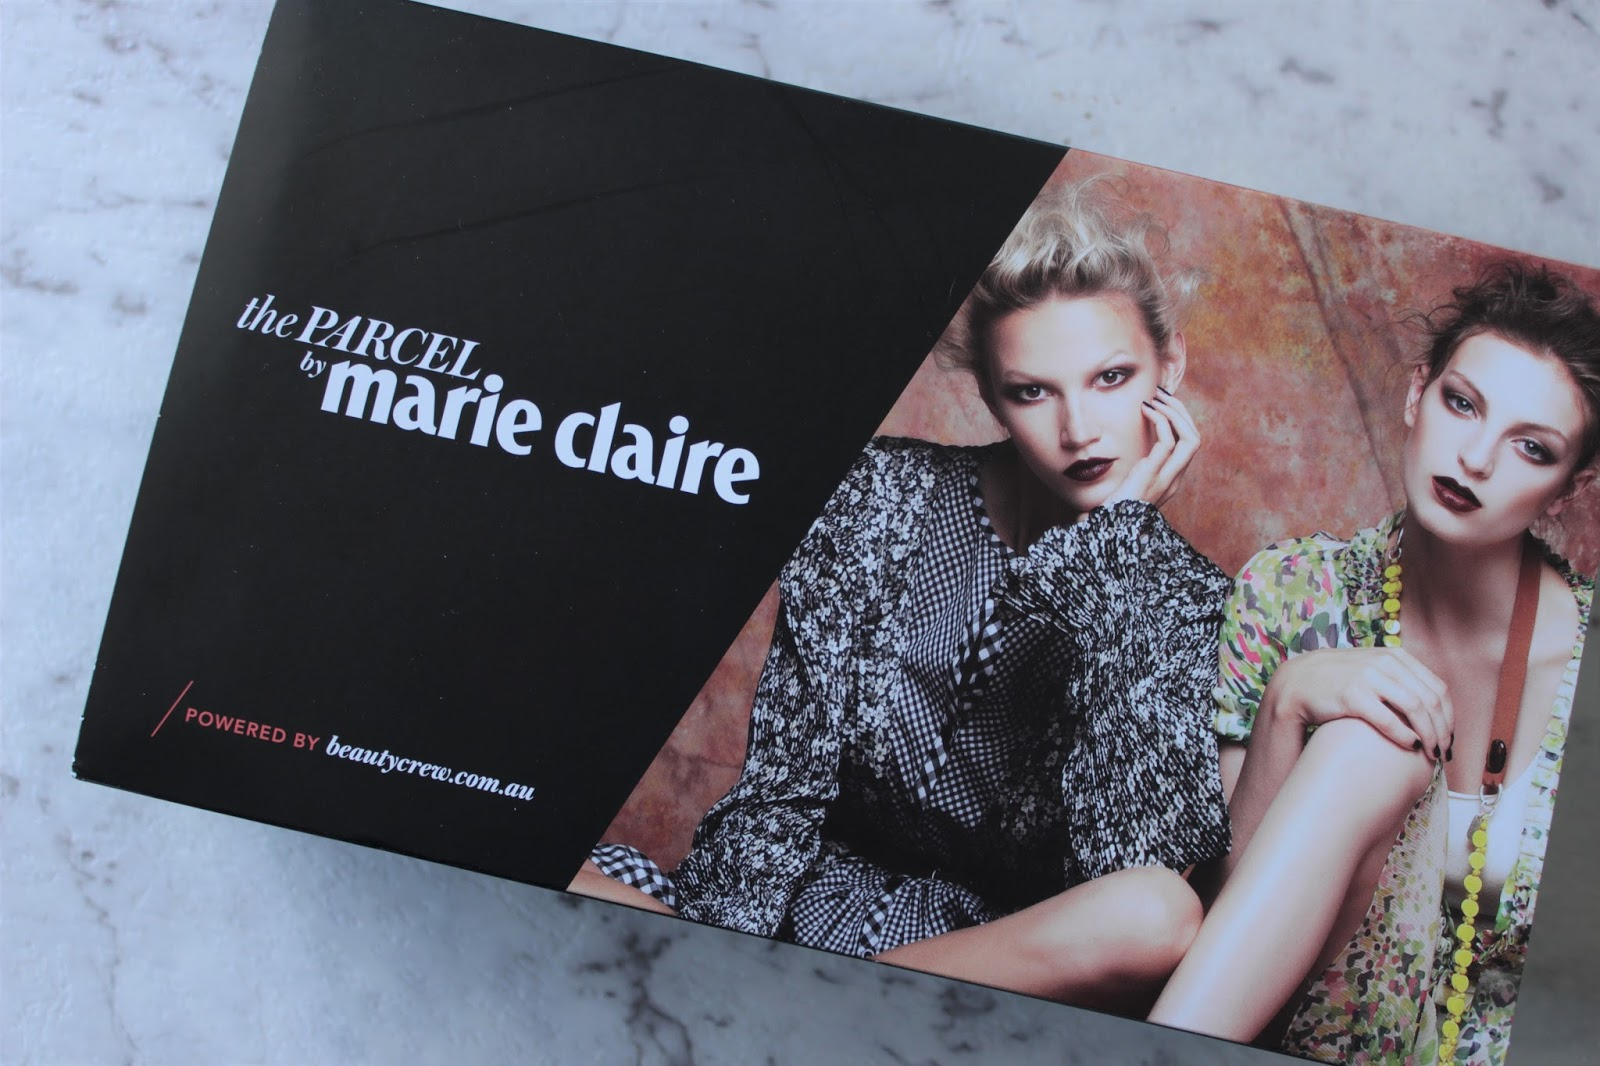 Marie claire the parcel summer dresses